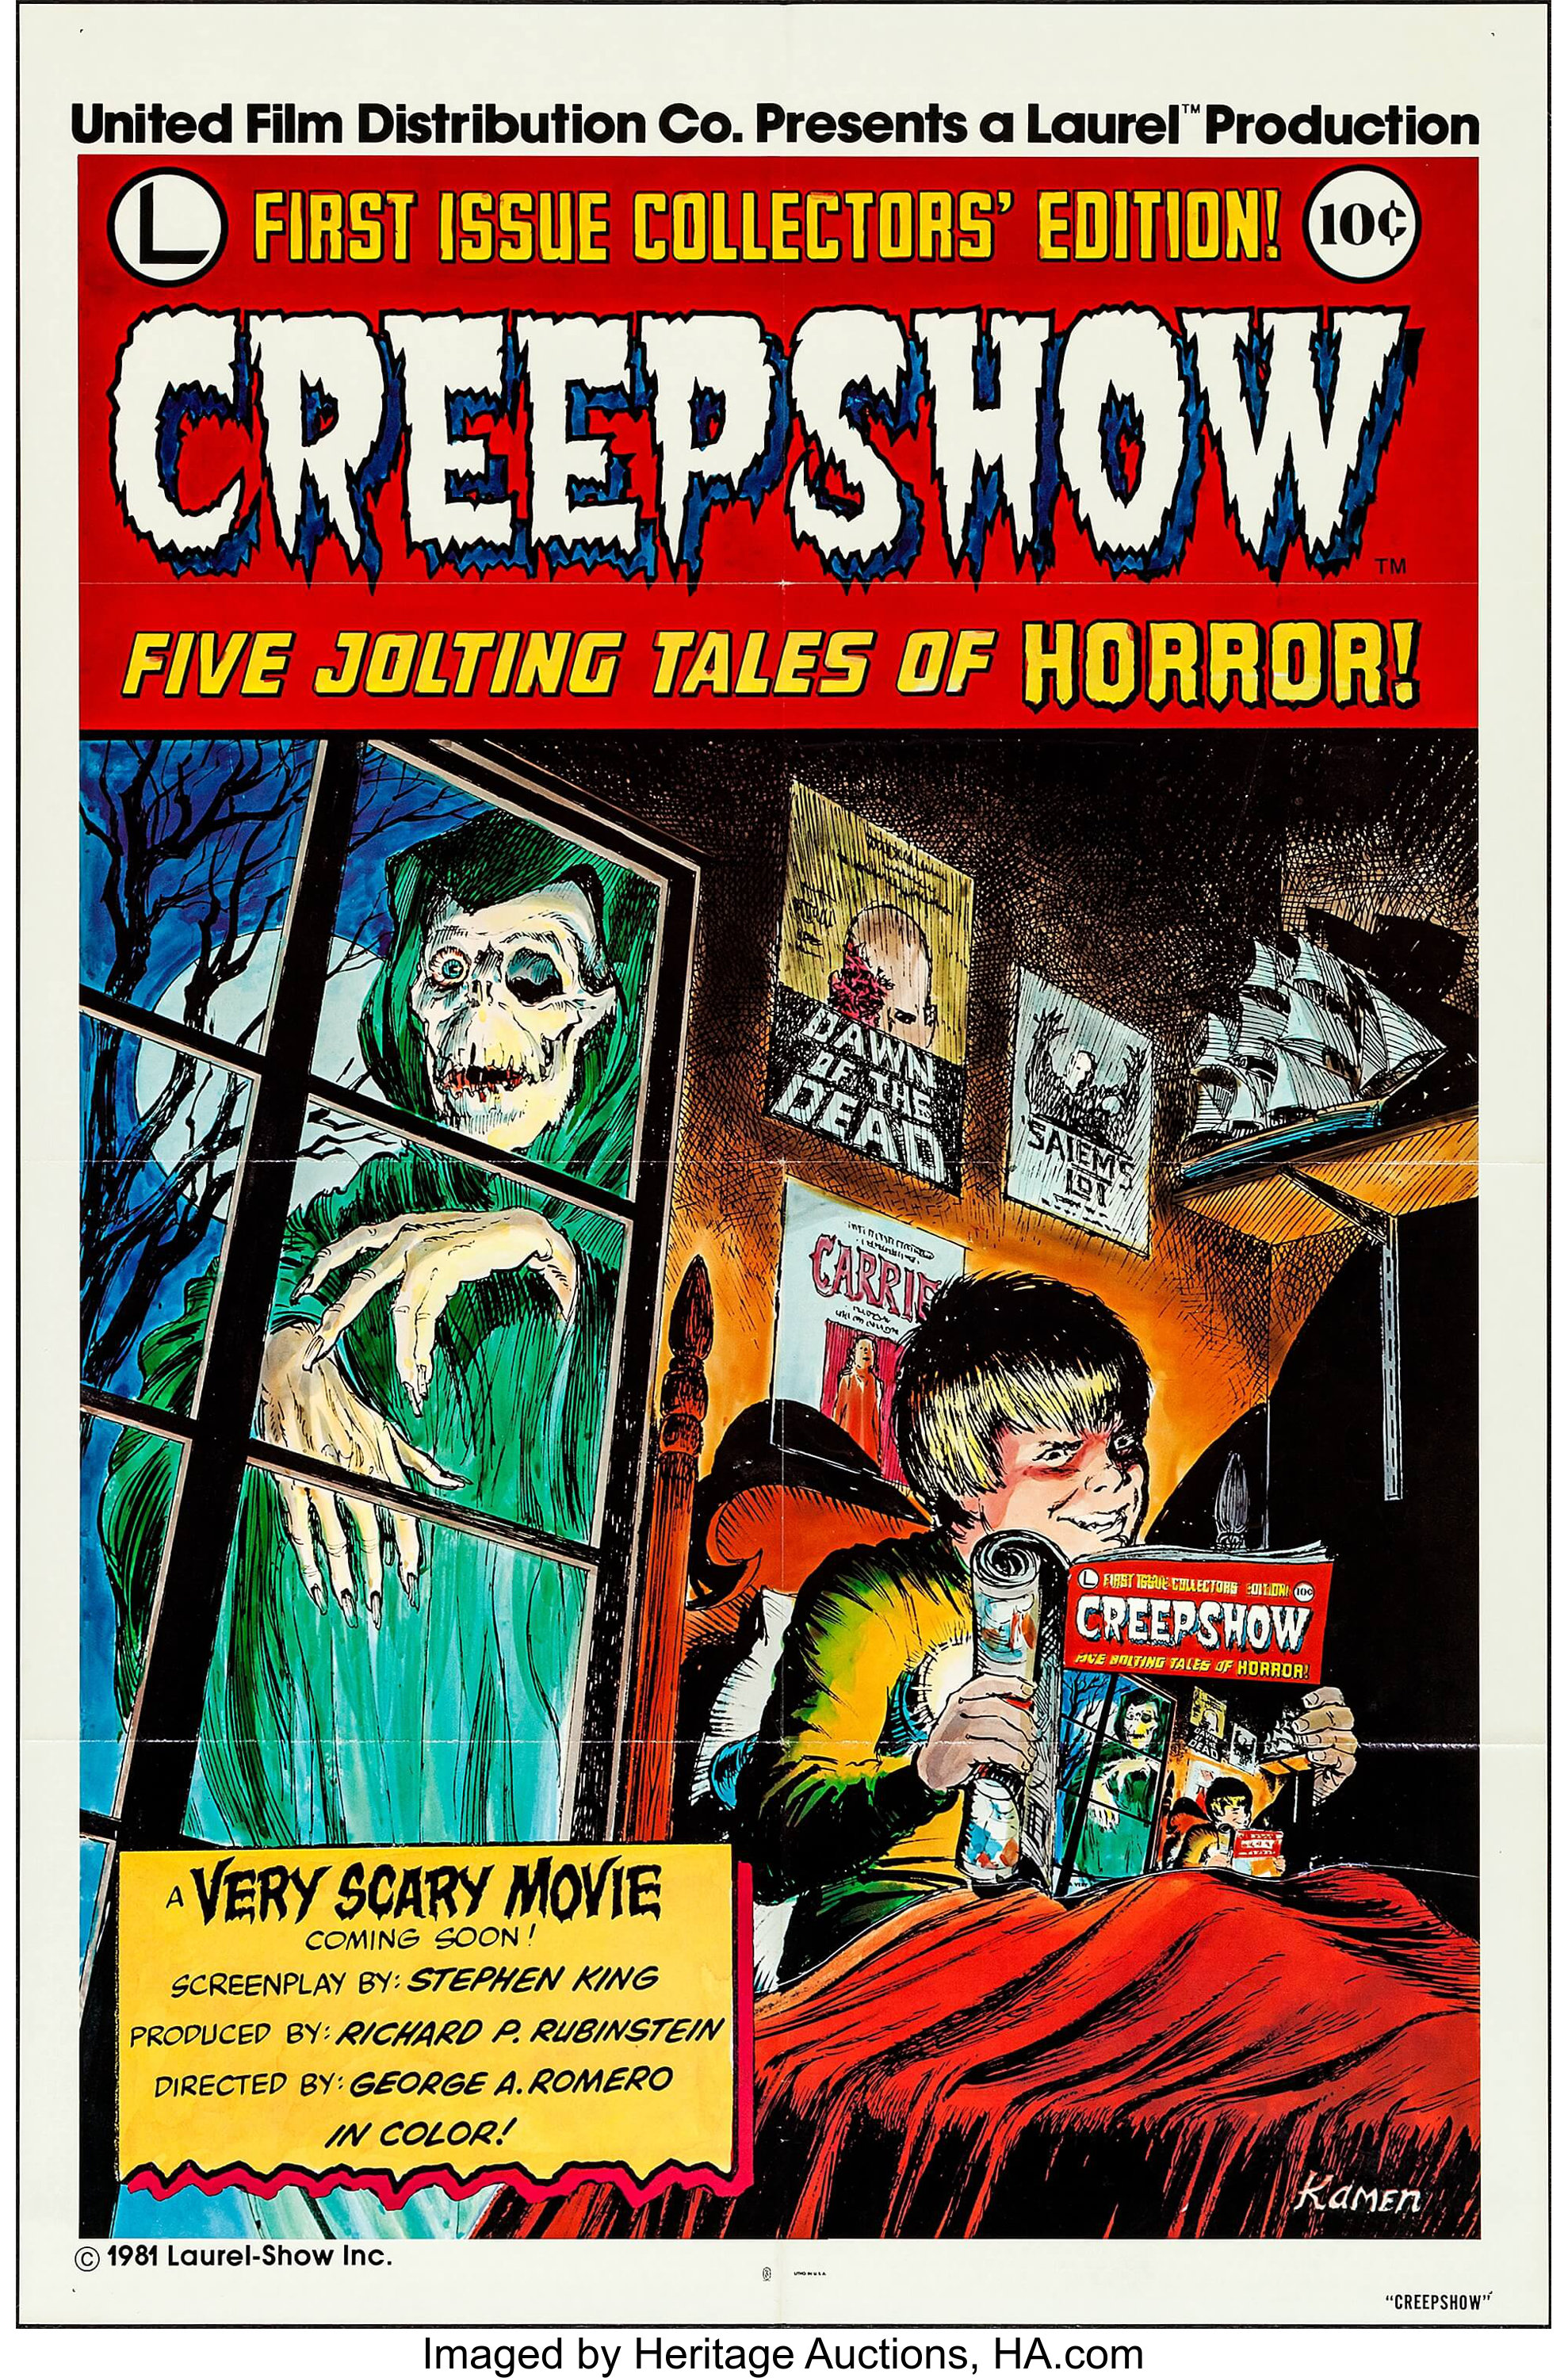 Creepshow (United Film Distribution, 1982)  International